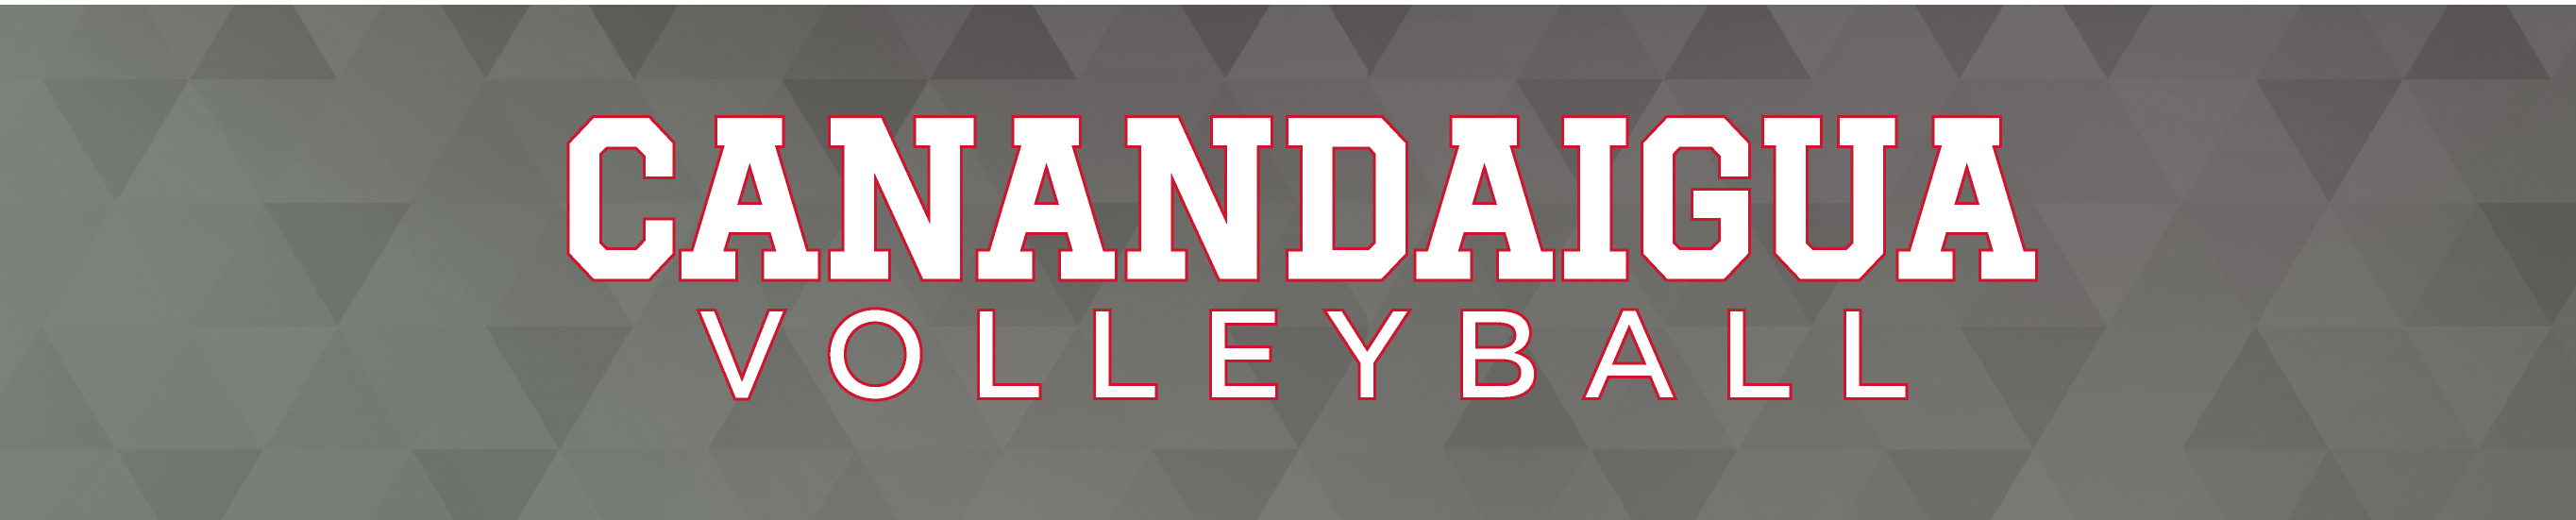 Canandaigua Volleyball